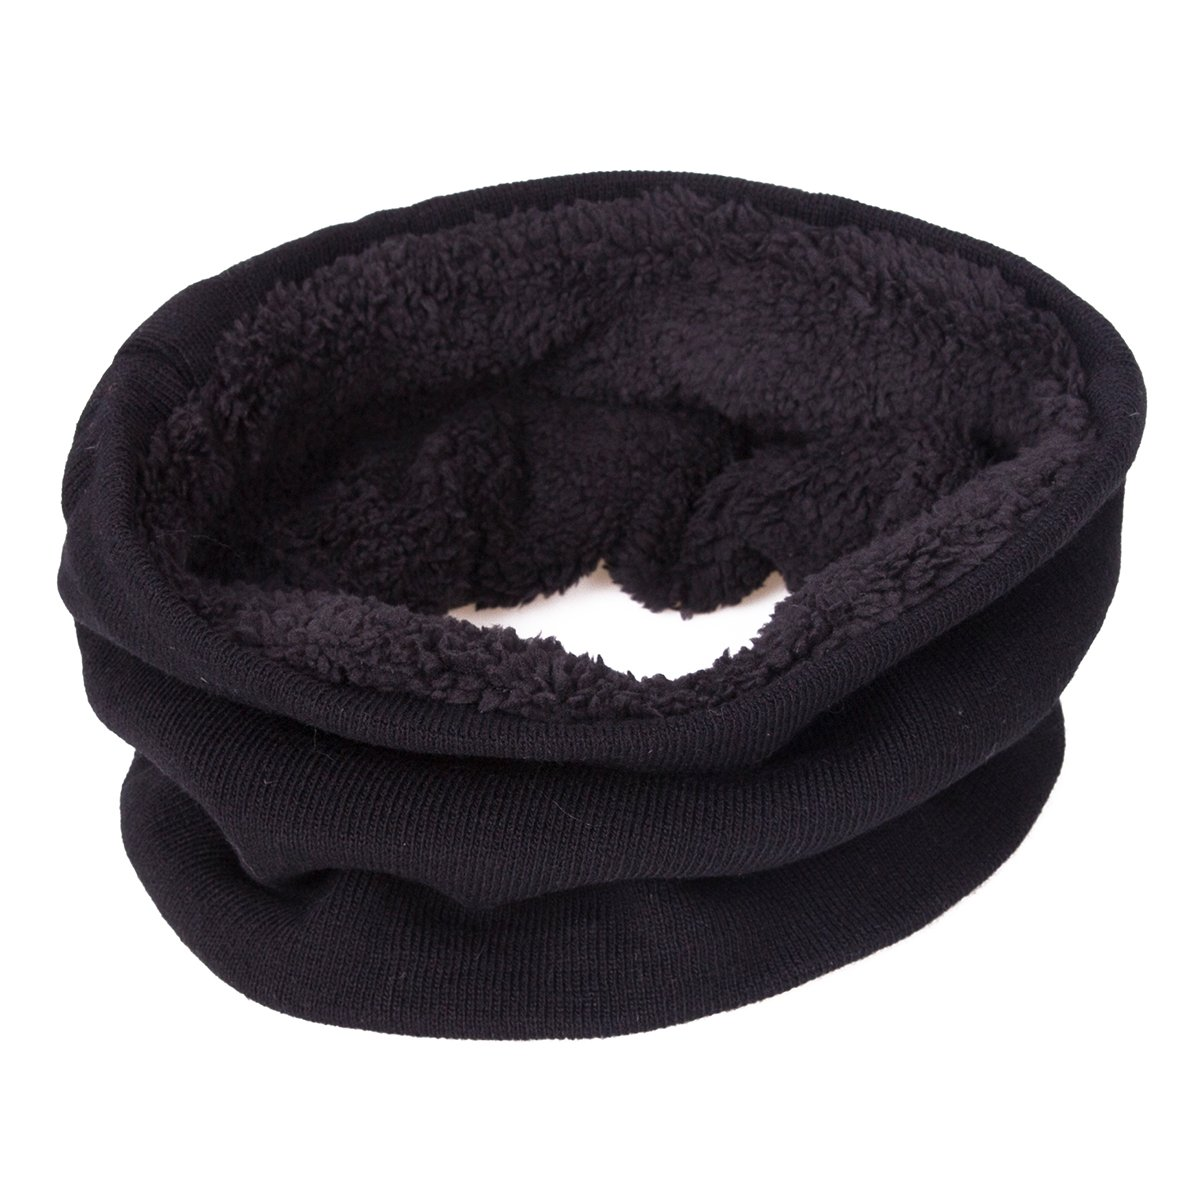 EVRFELAN Winter Warm Hat Beanie thick infinity Scarf Smart Touch screen Texting Gloves (Black) by EVRFELAN (Image #3)